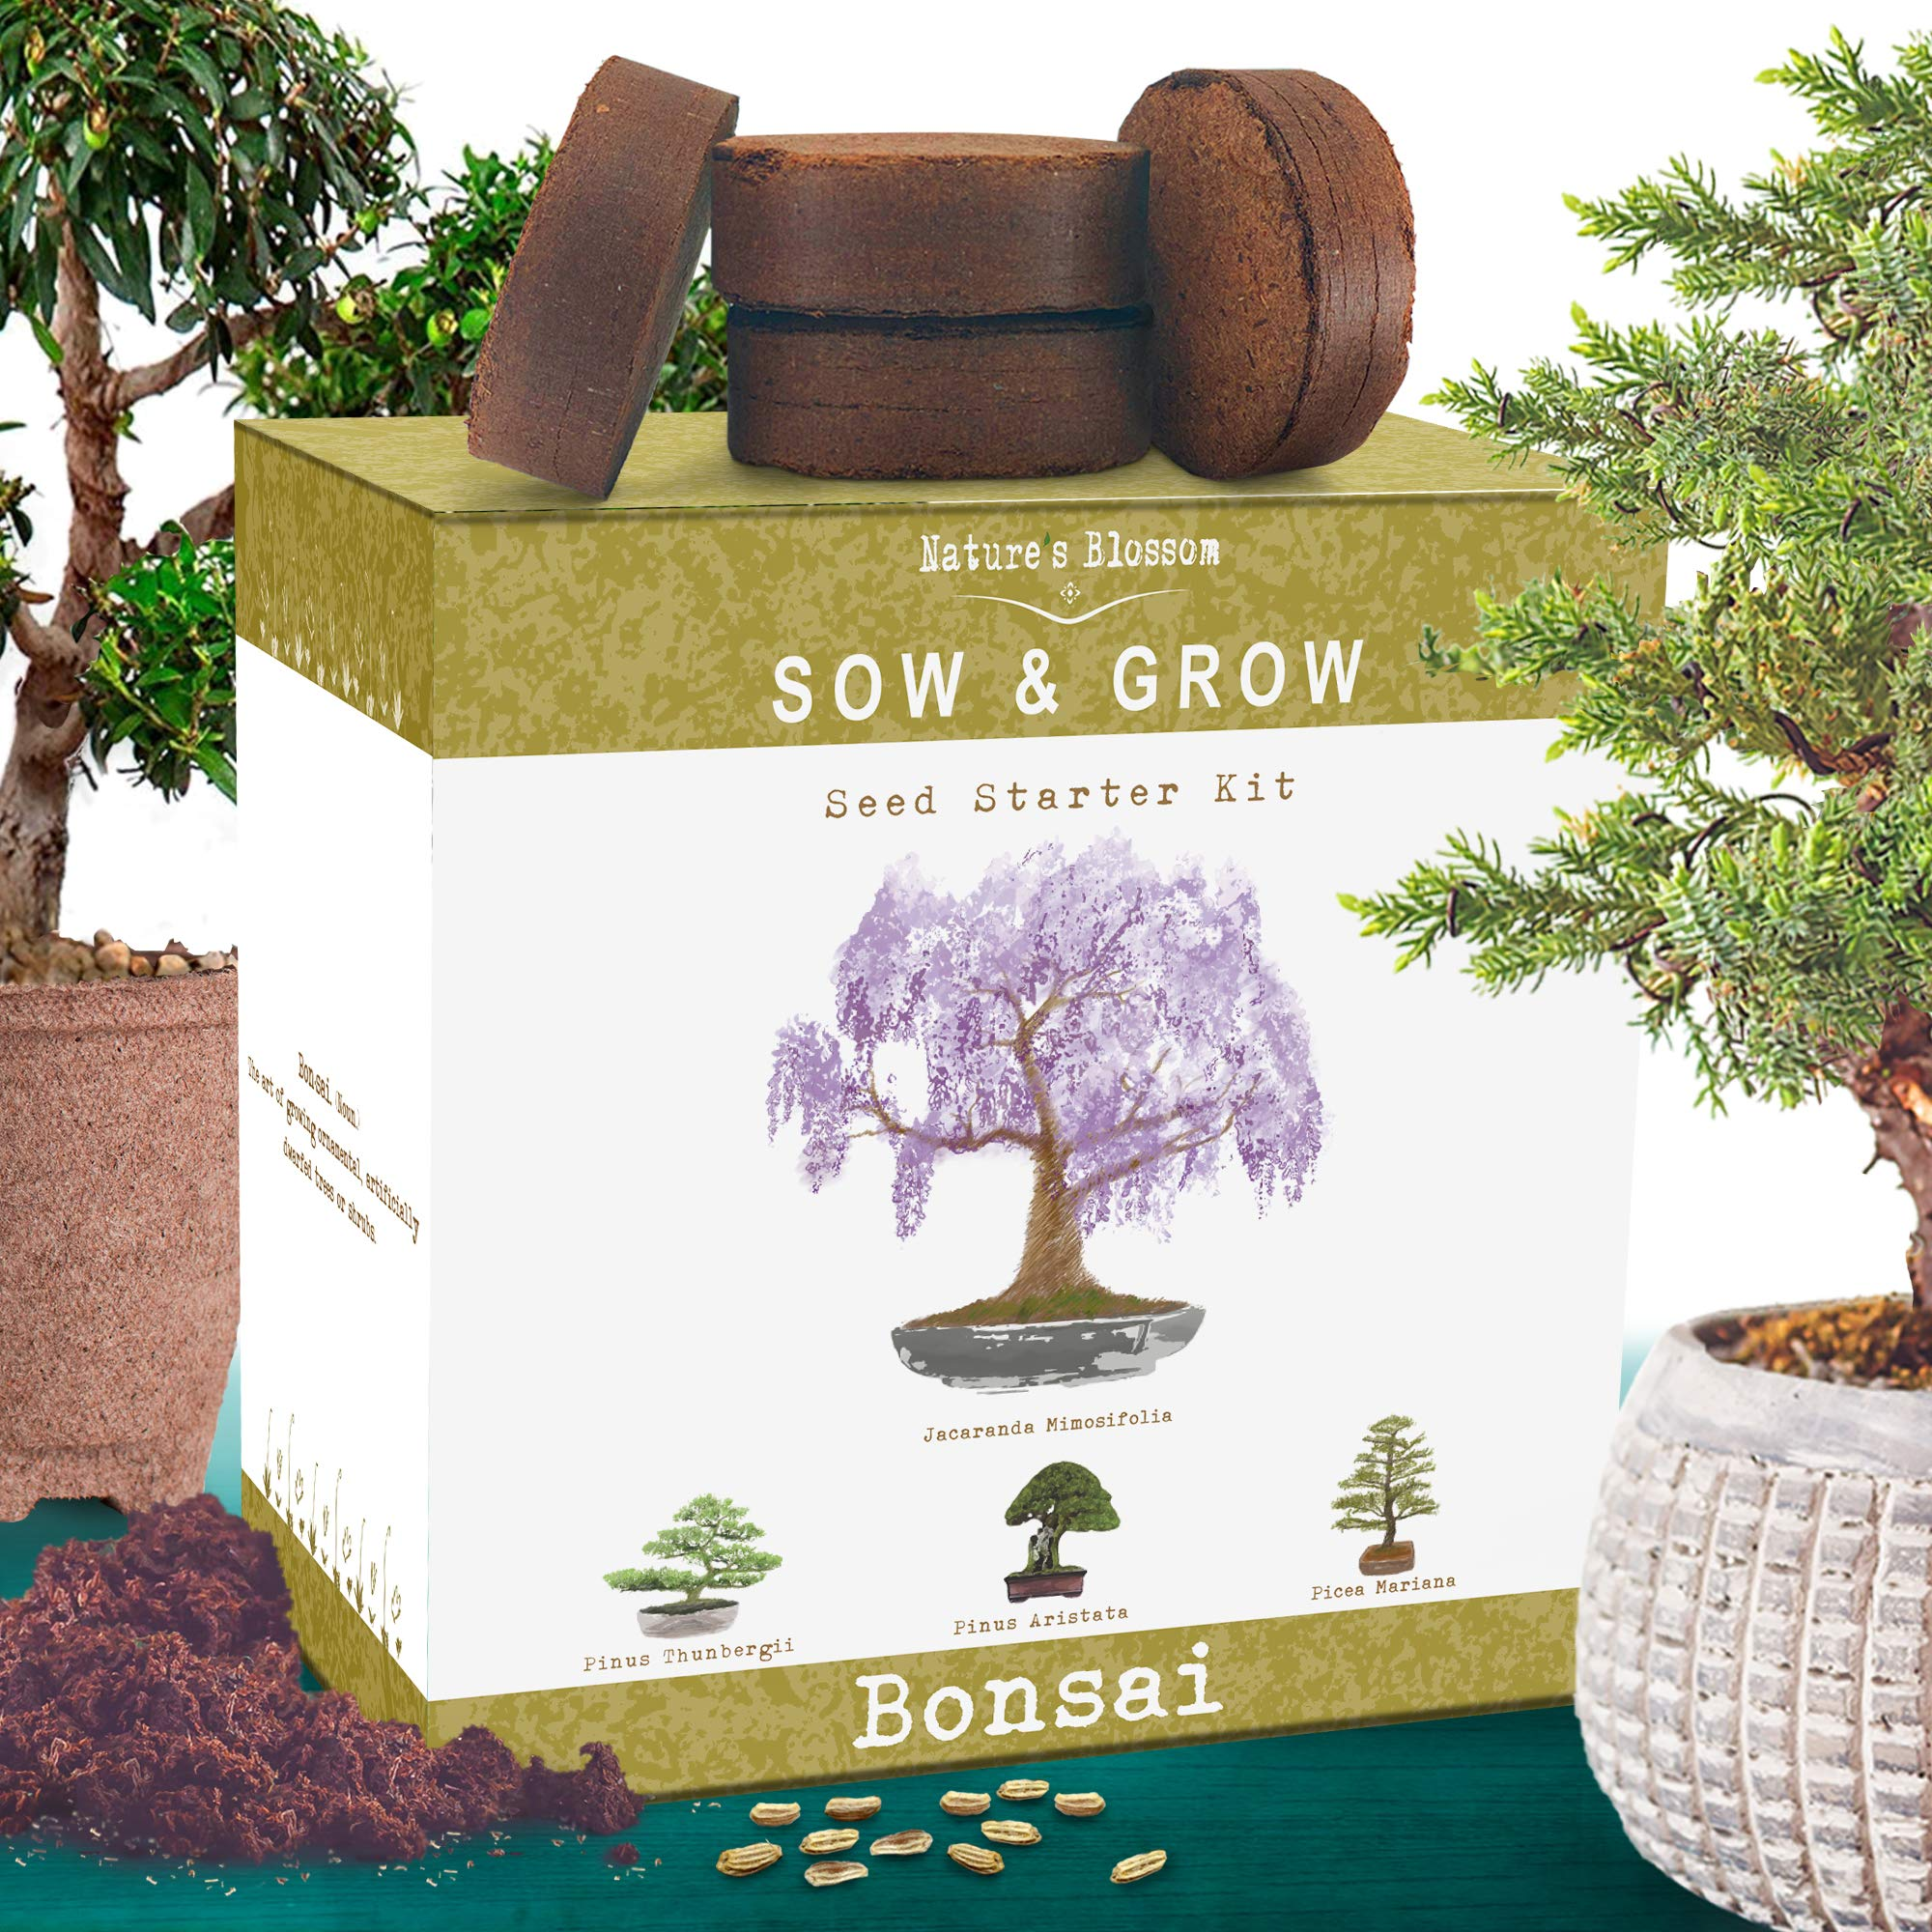 Nature's Blossom Bonsai Tree Kit. Grow 4 Types of Miniature Trees From Seed. A Complete Indoor Gardening Seed Starter Set with Organic Tree Seeds, Soil, Planting Pots, Plant Labels and Growing Guide by Nature's Blossom